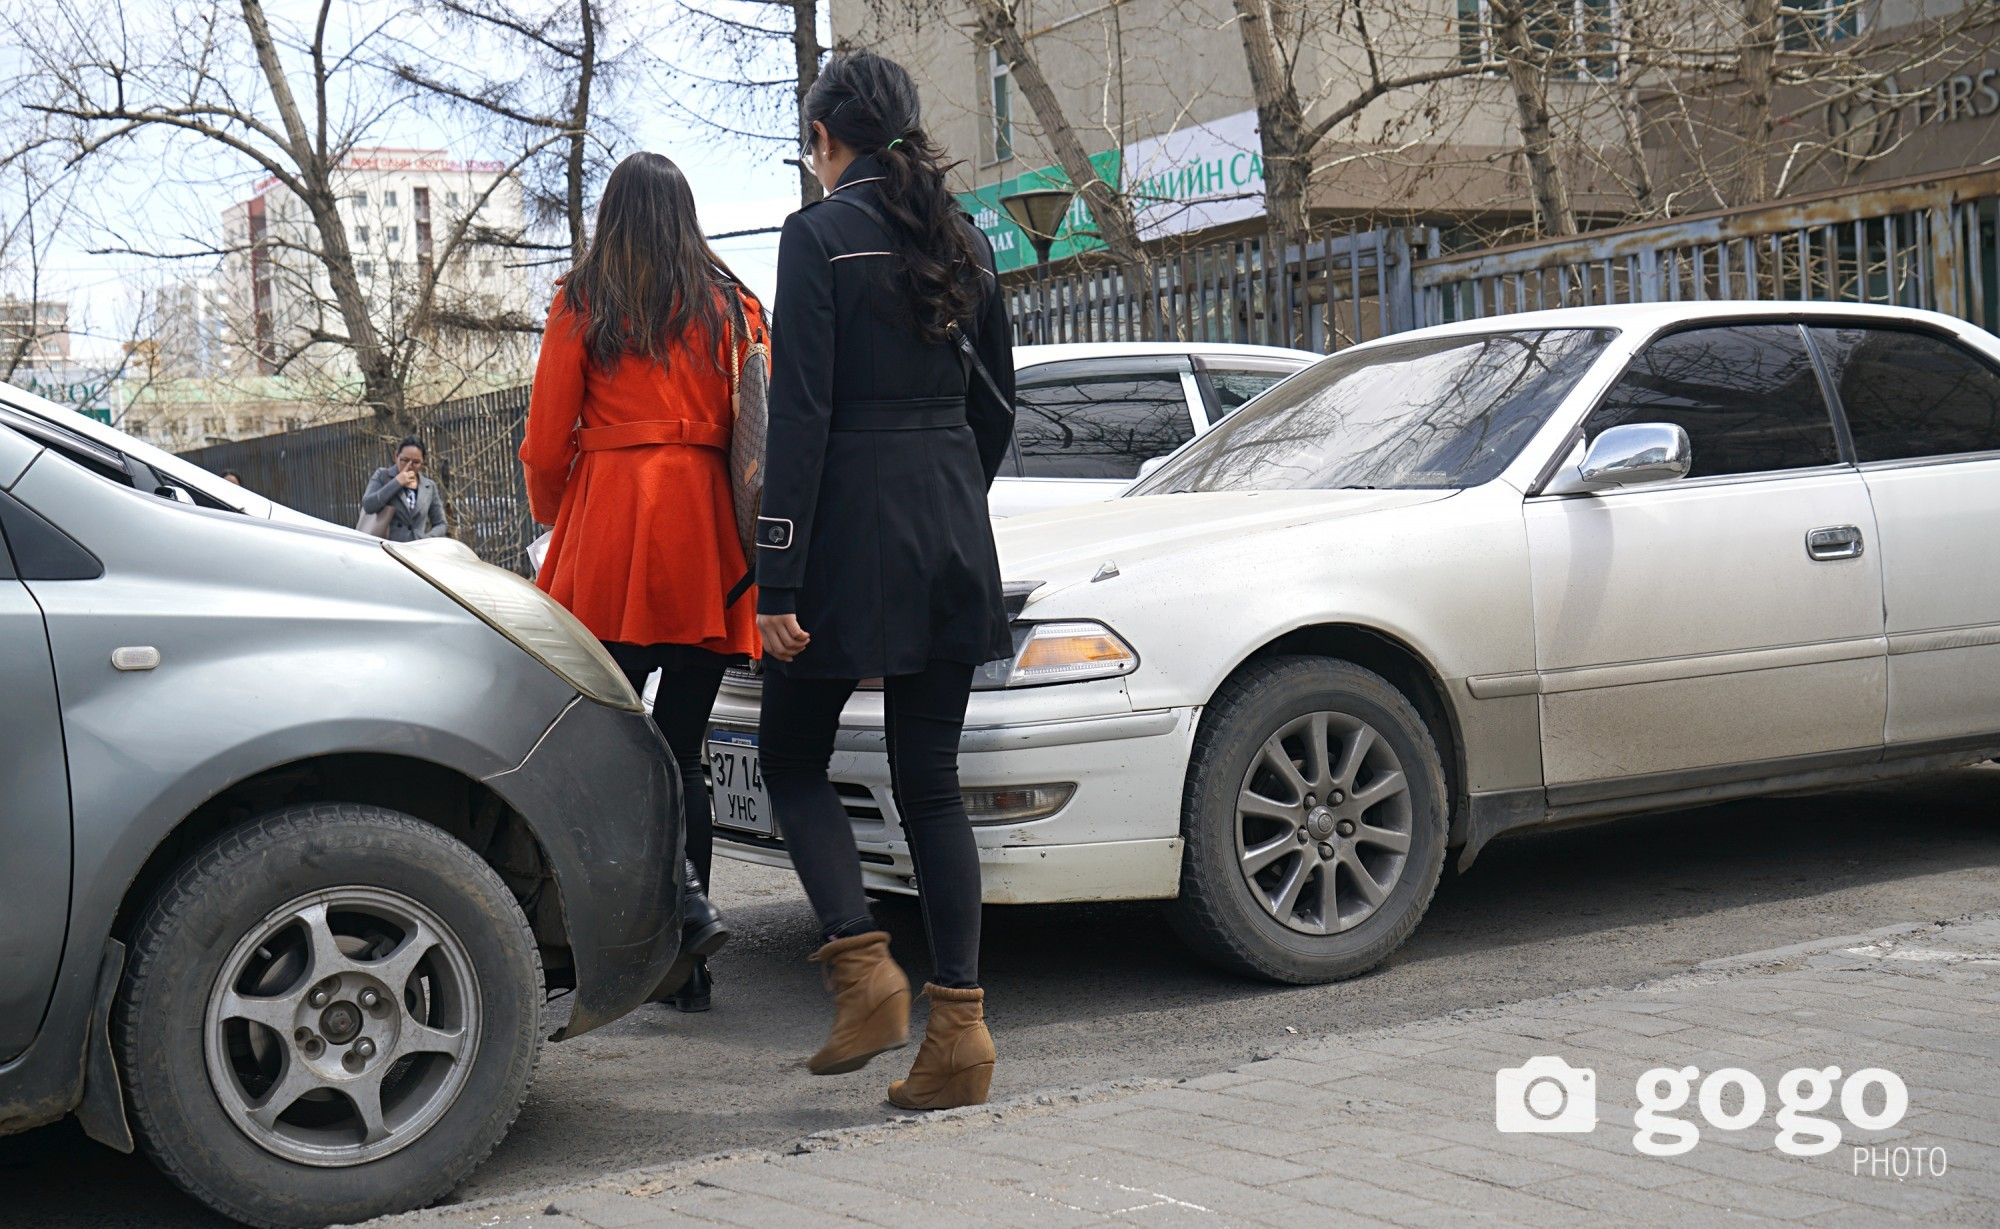 Pedestrian located in north of 1st maternity health center. Too cramped Ulaanbaatar... /2017.04.22/